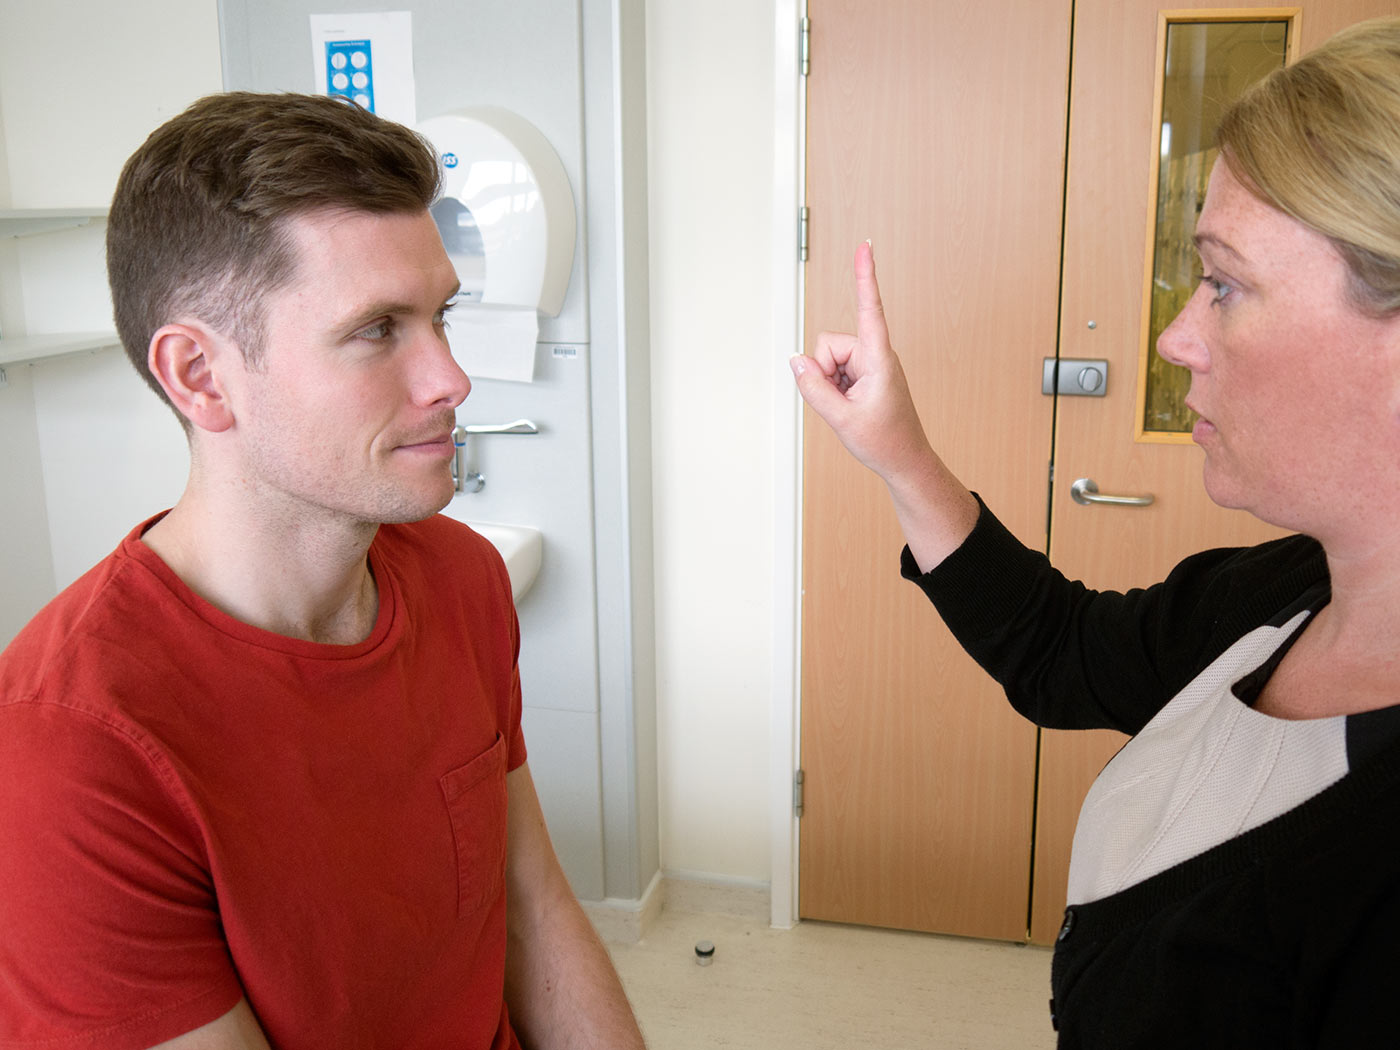 Get the patient to follow your finger